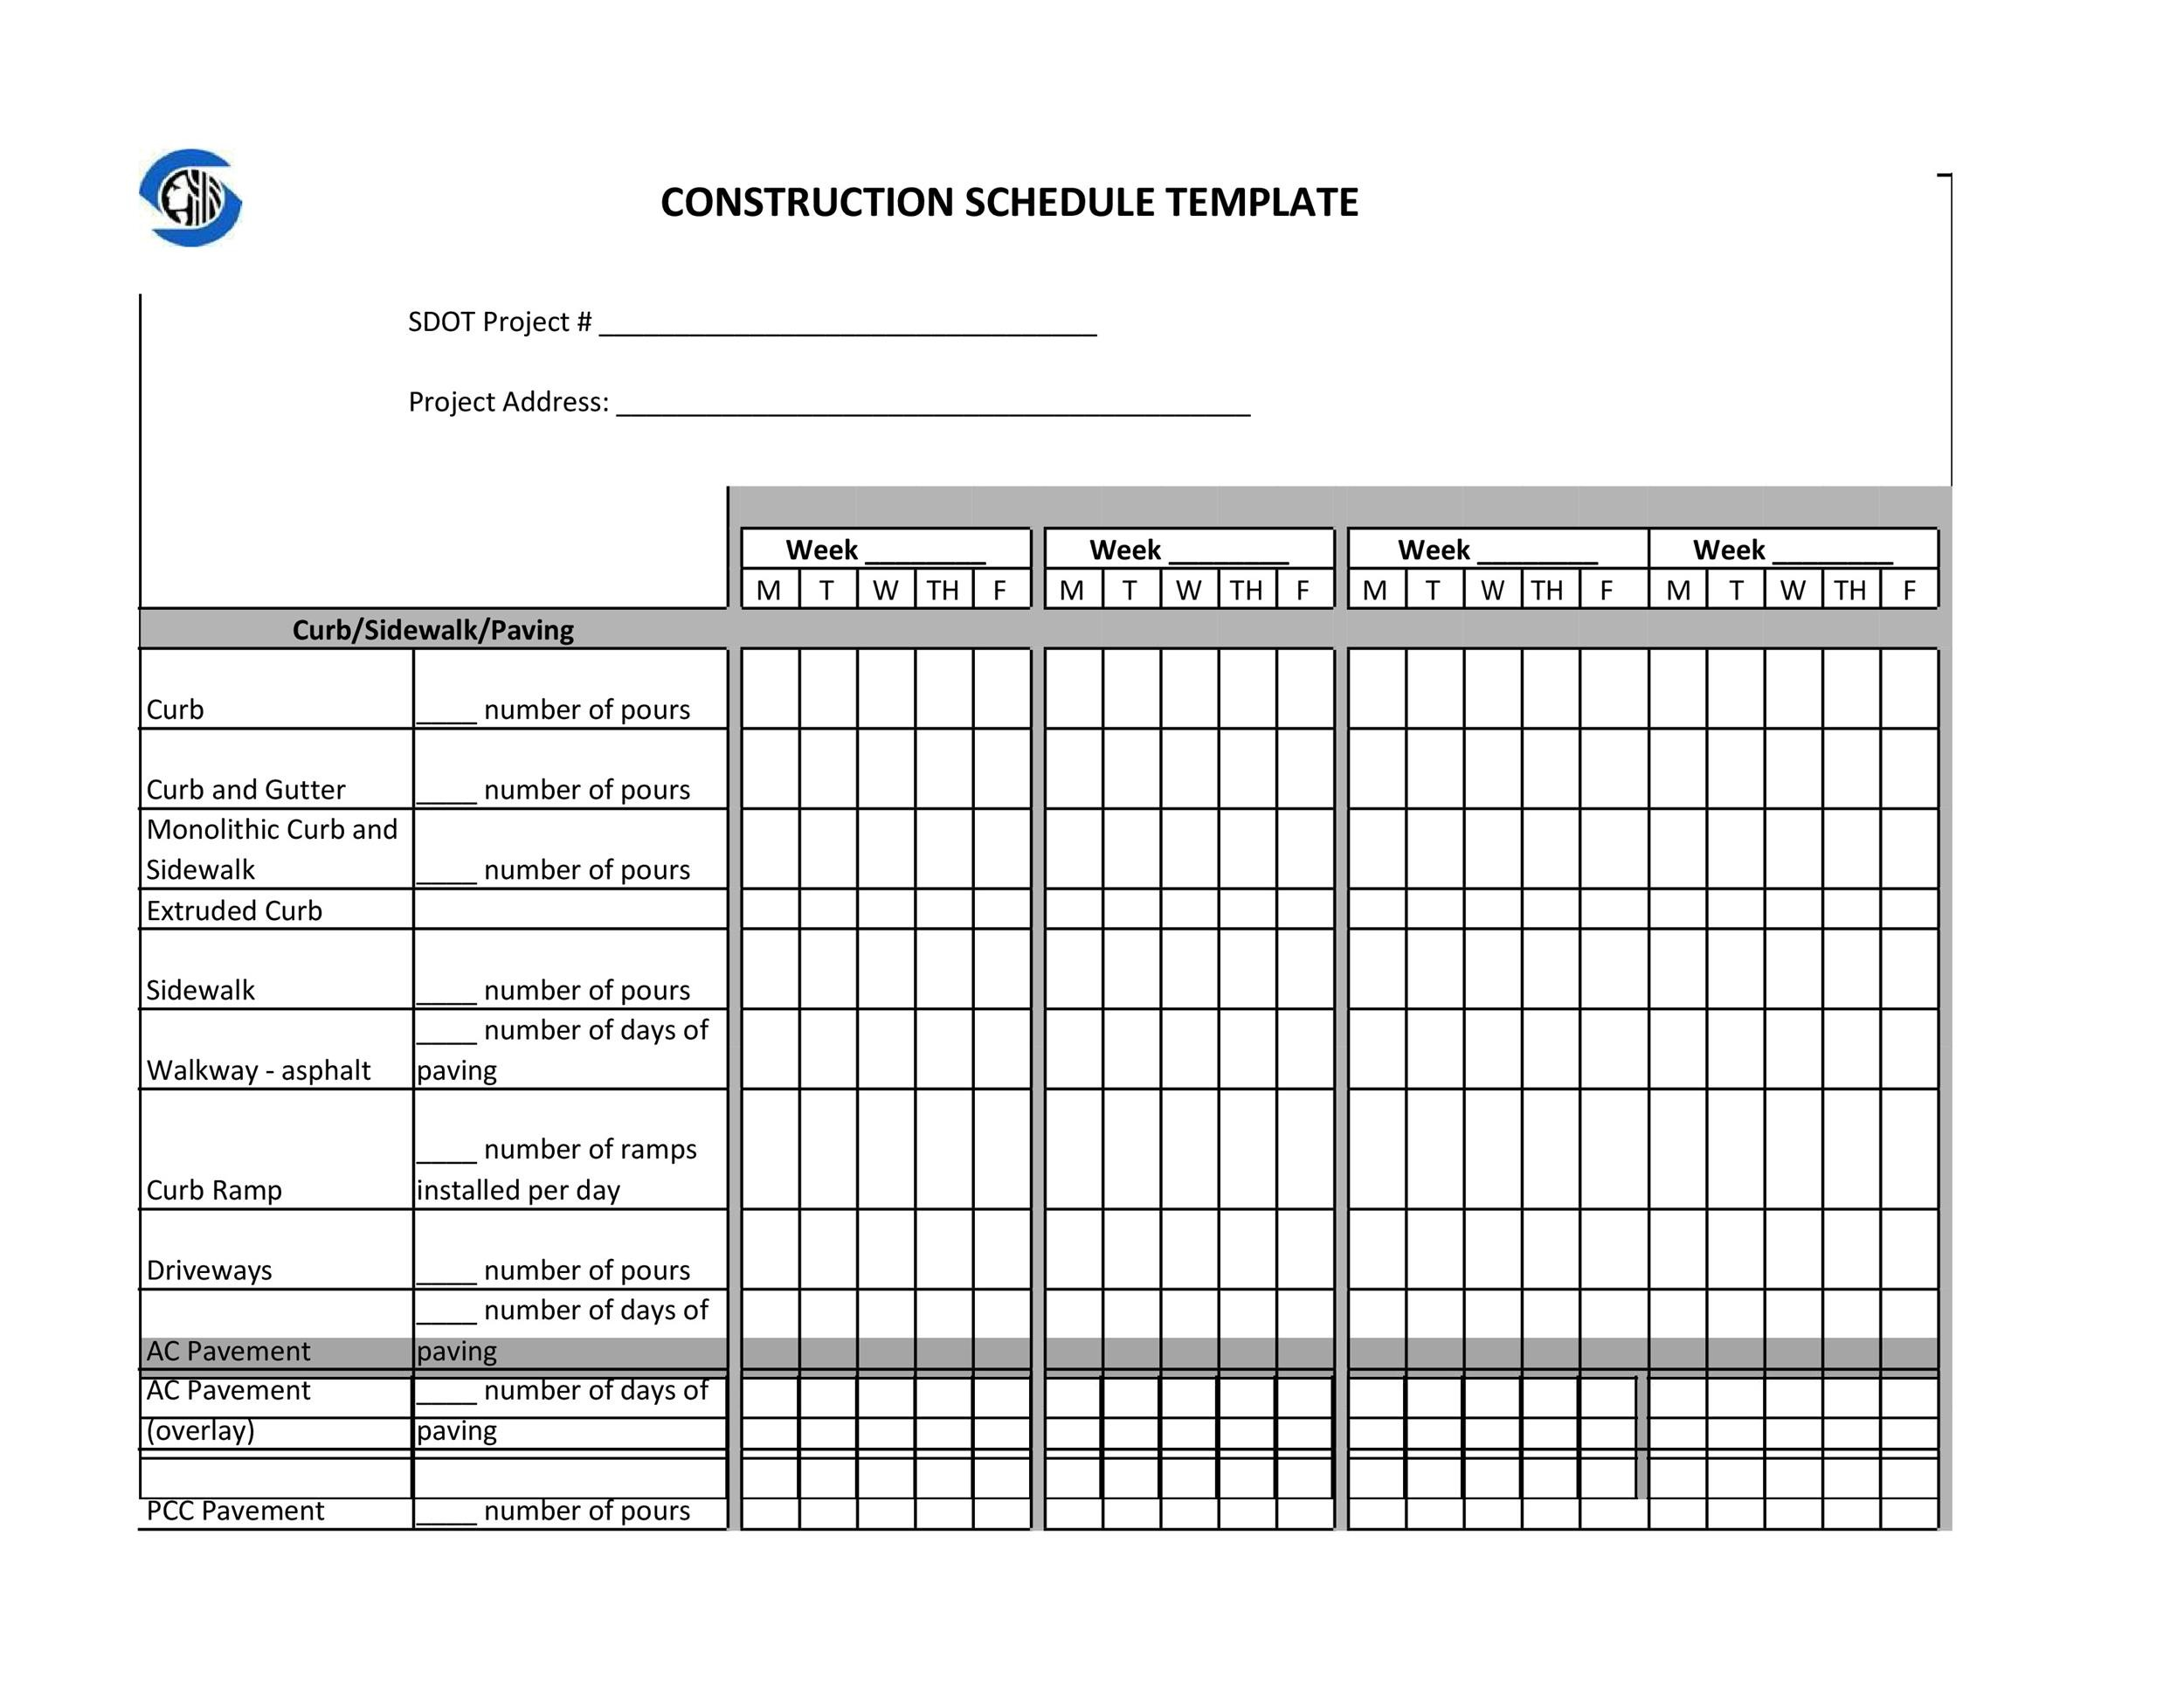 21 construction schedule templates in word  u0026 excel  u1405 template lab